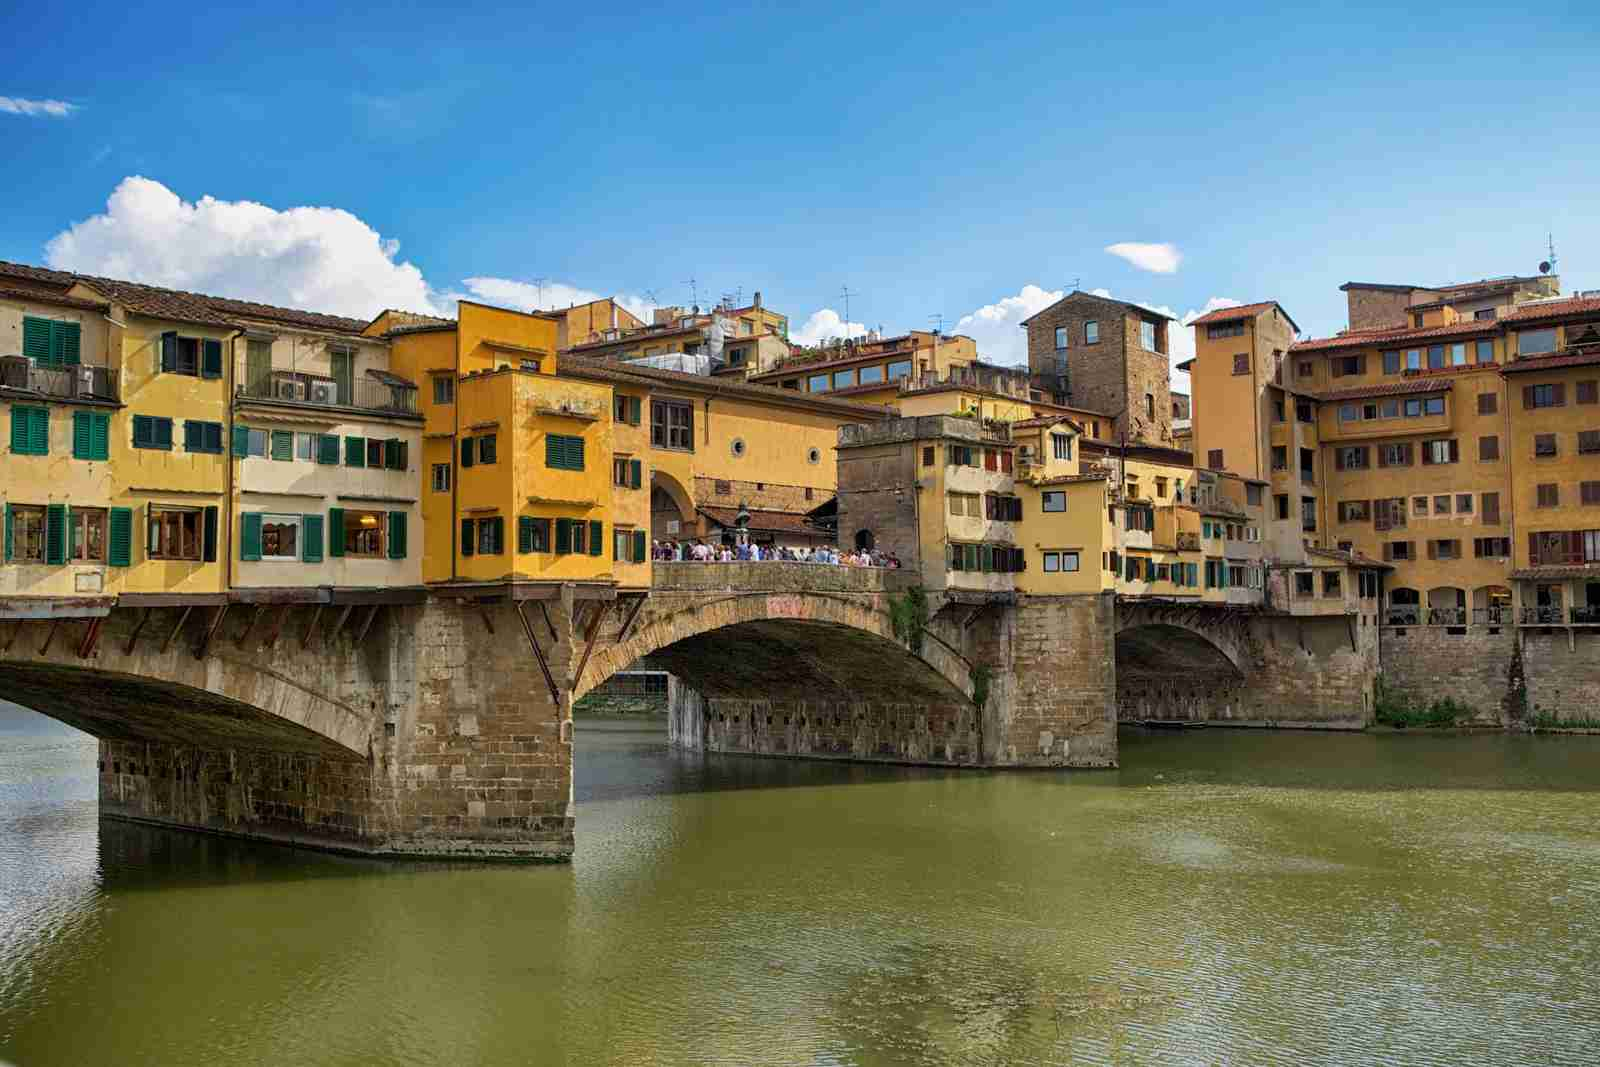 Ponte Vecchio, Florence. (Photo by Photography by Jeremy Vilasis. Phillippines / Getty Images)